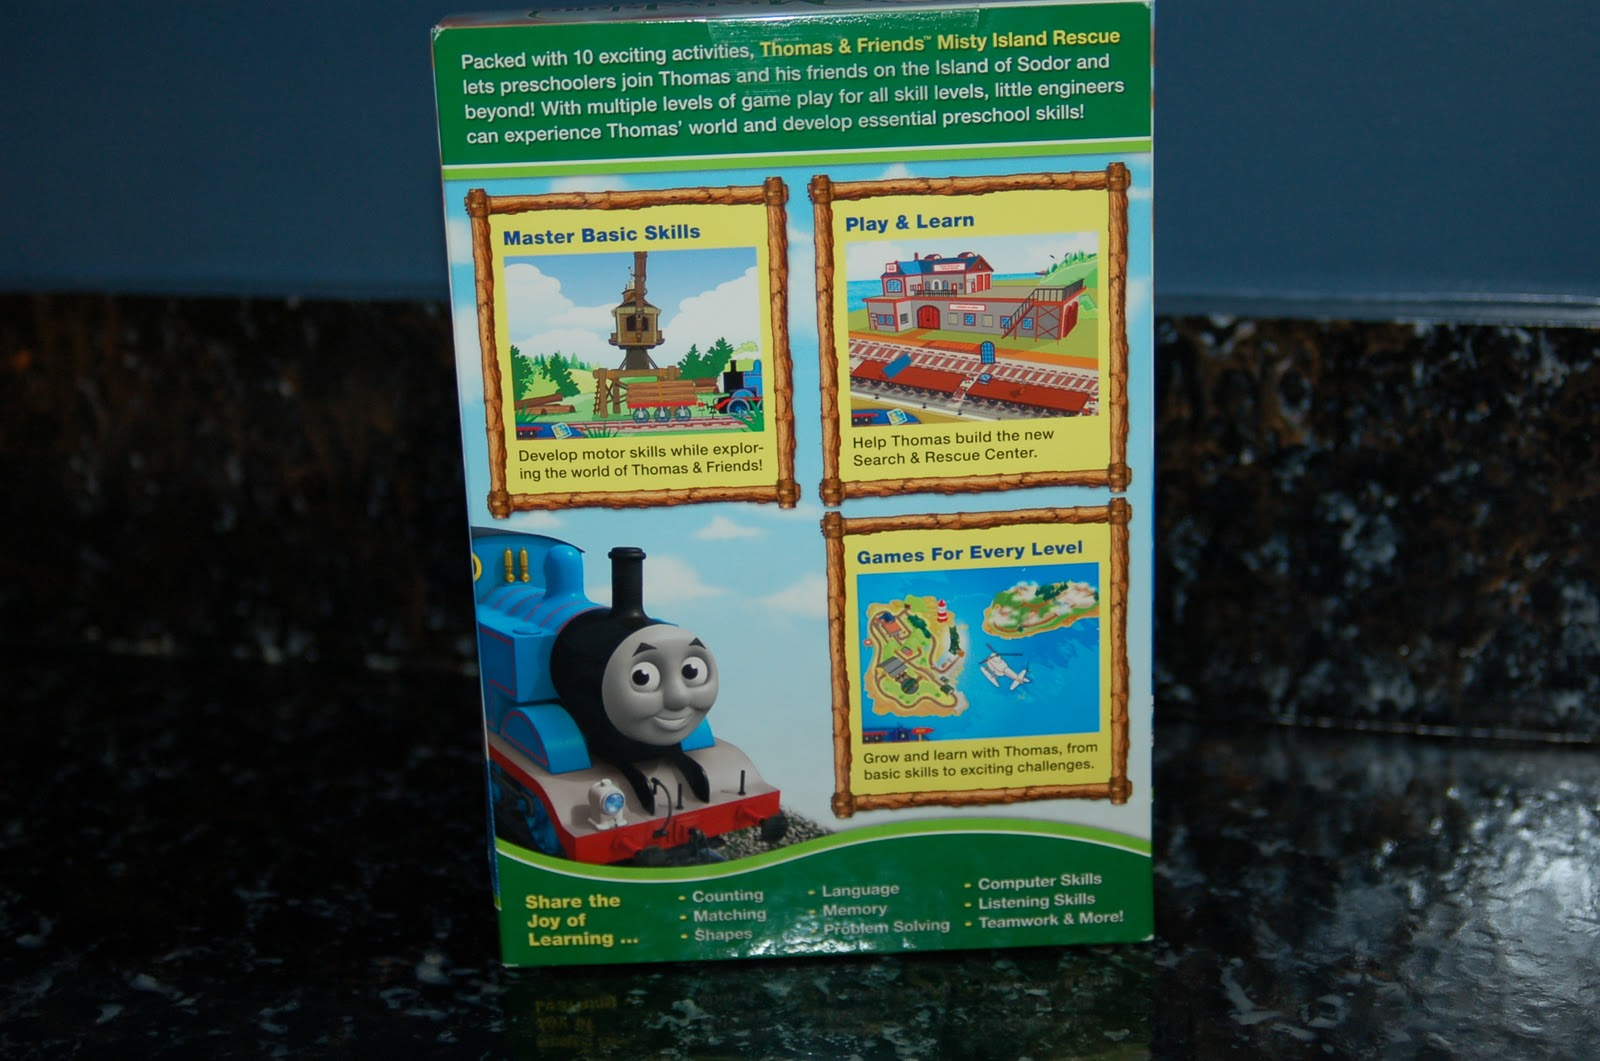 My Son Absolutely LOVED This Game Throughout The Computer There Are Video Clips Of Thomas His Friends Showing Little Mini Movies Which Were A Real